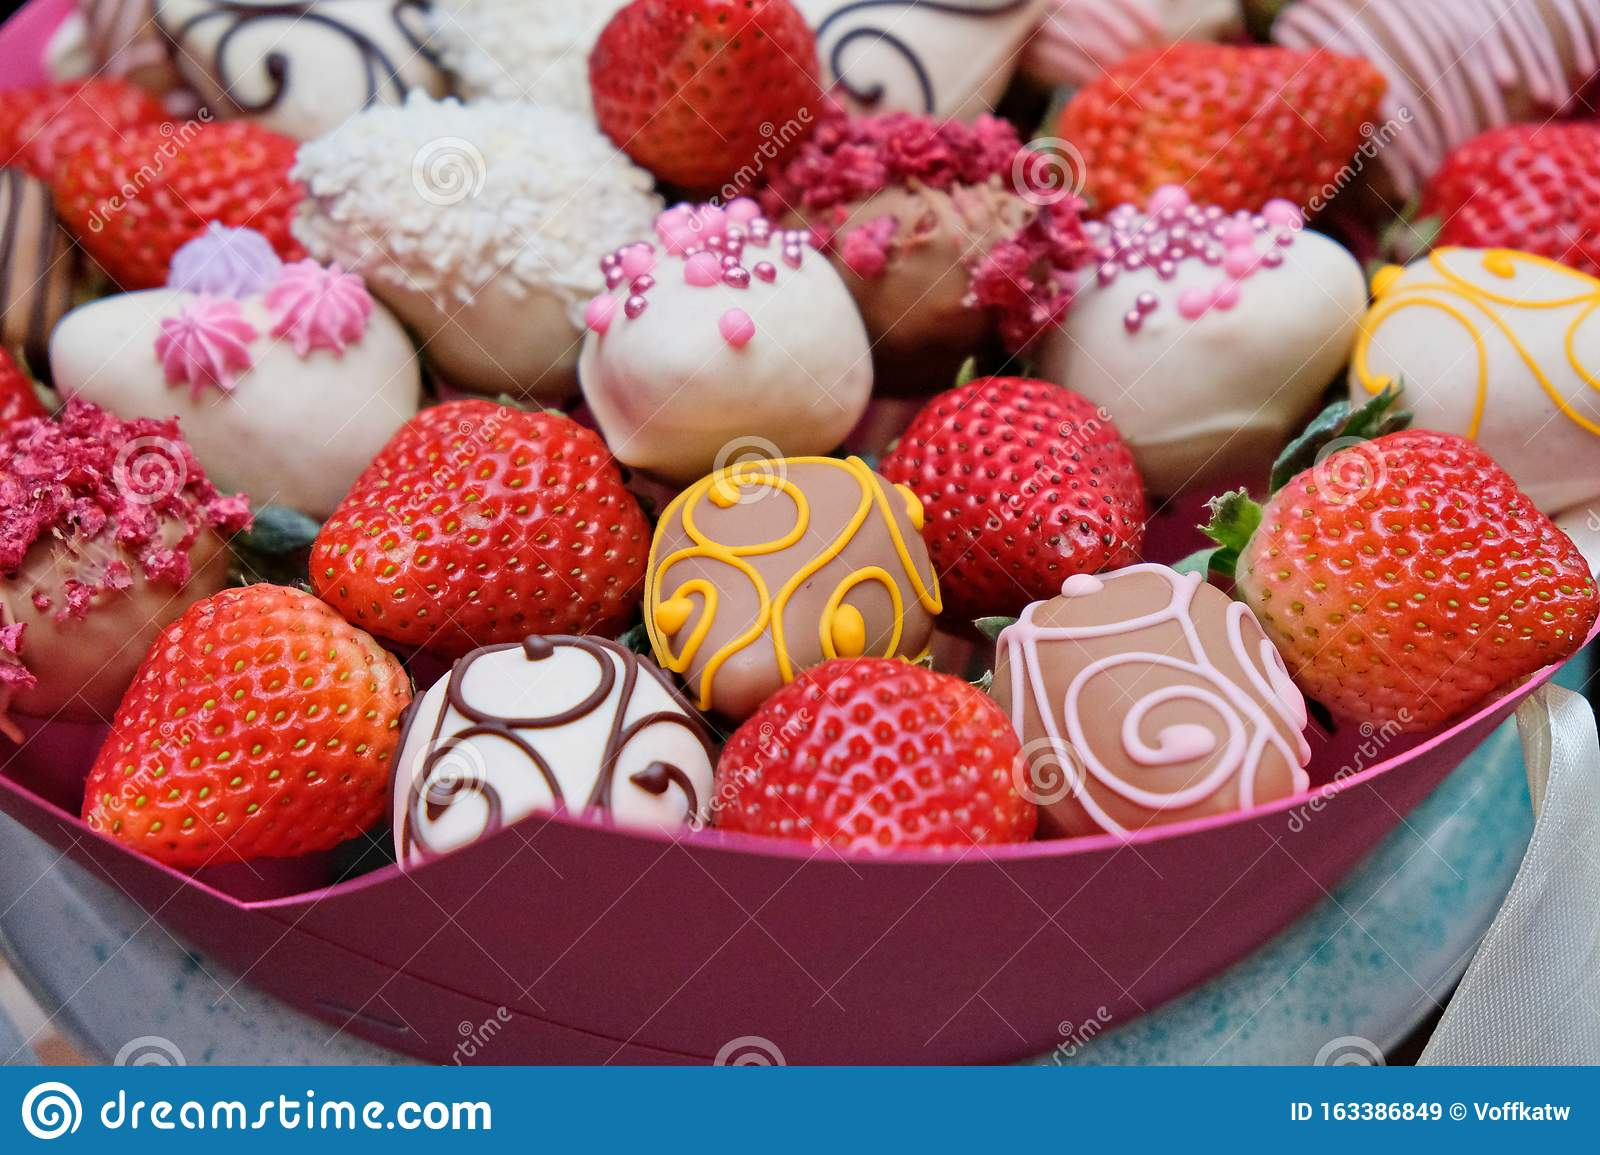 A Bouquet Of Chocolate Covered Strawberries With Different Toppings Stock Image Image Of Fruit Celebration 163386849